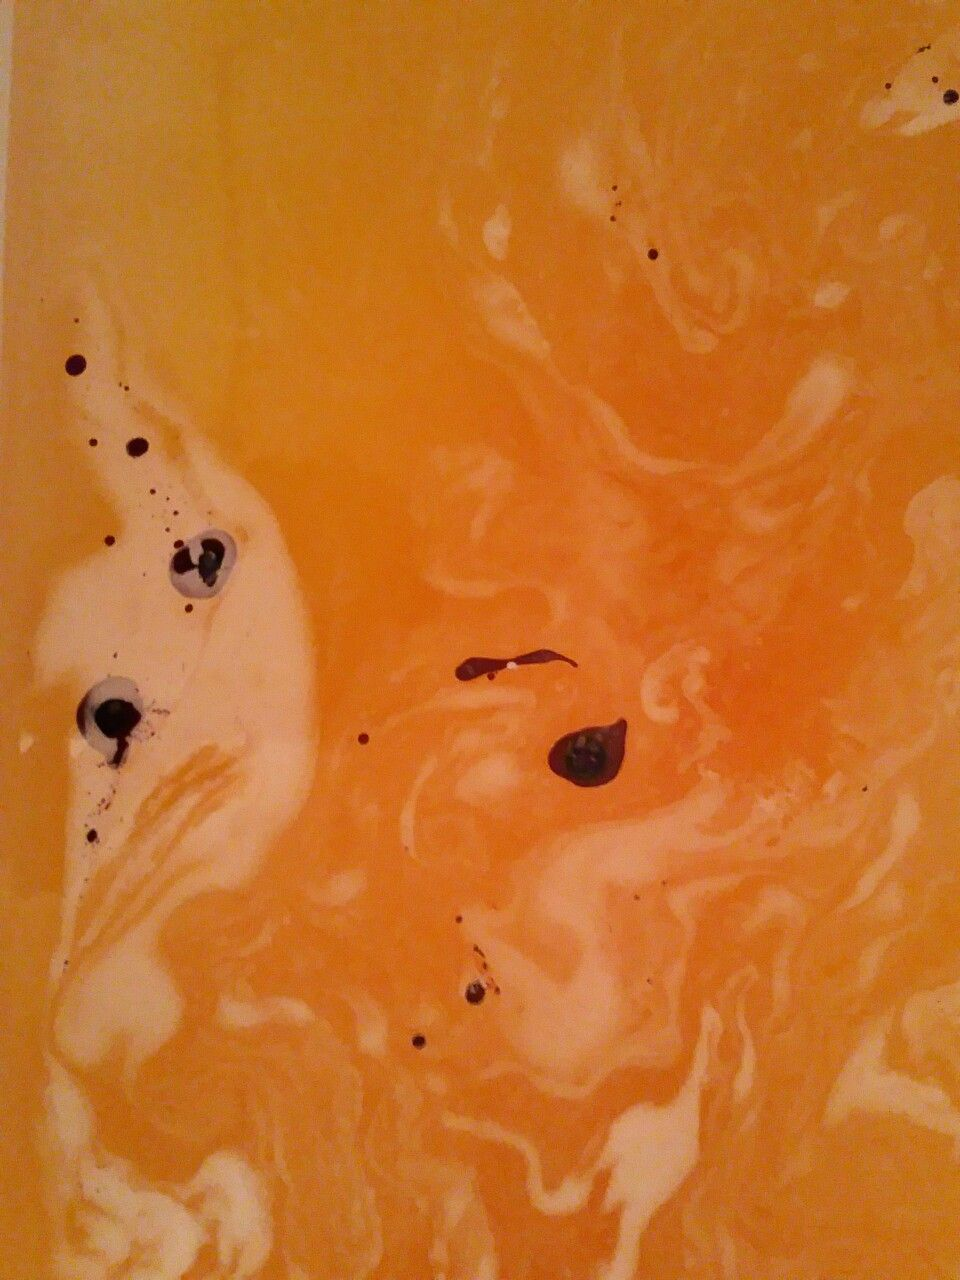 Lava Lamp Bath Bomb Magnificent Lava Lamp Bath Bomb Gorgeous Citrus Smelling Bright Orange Bath